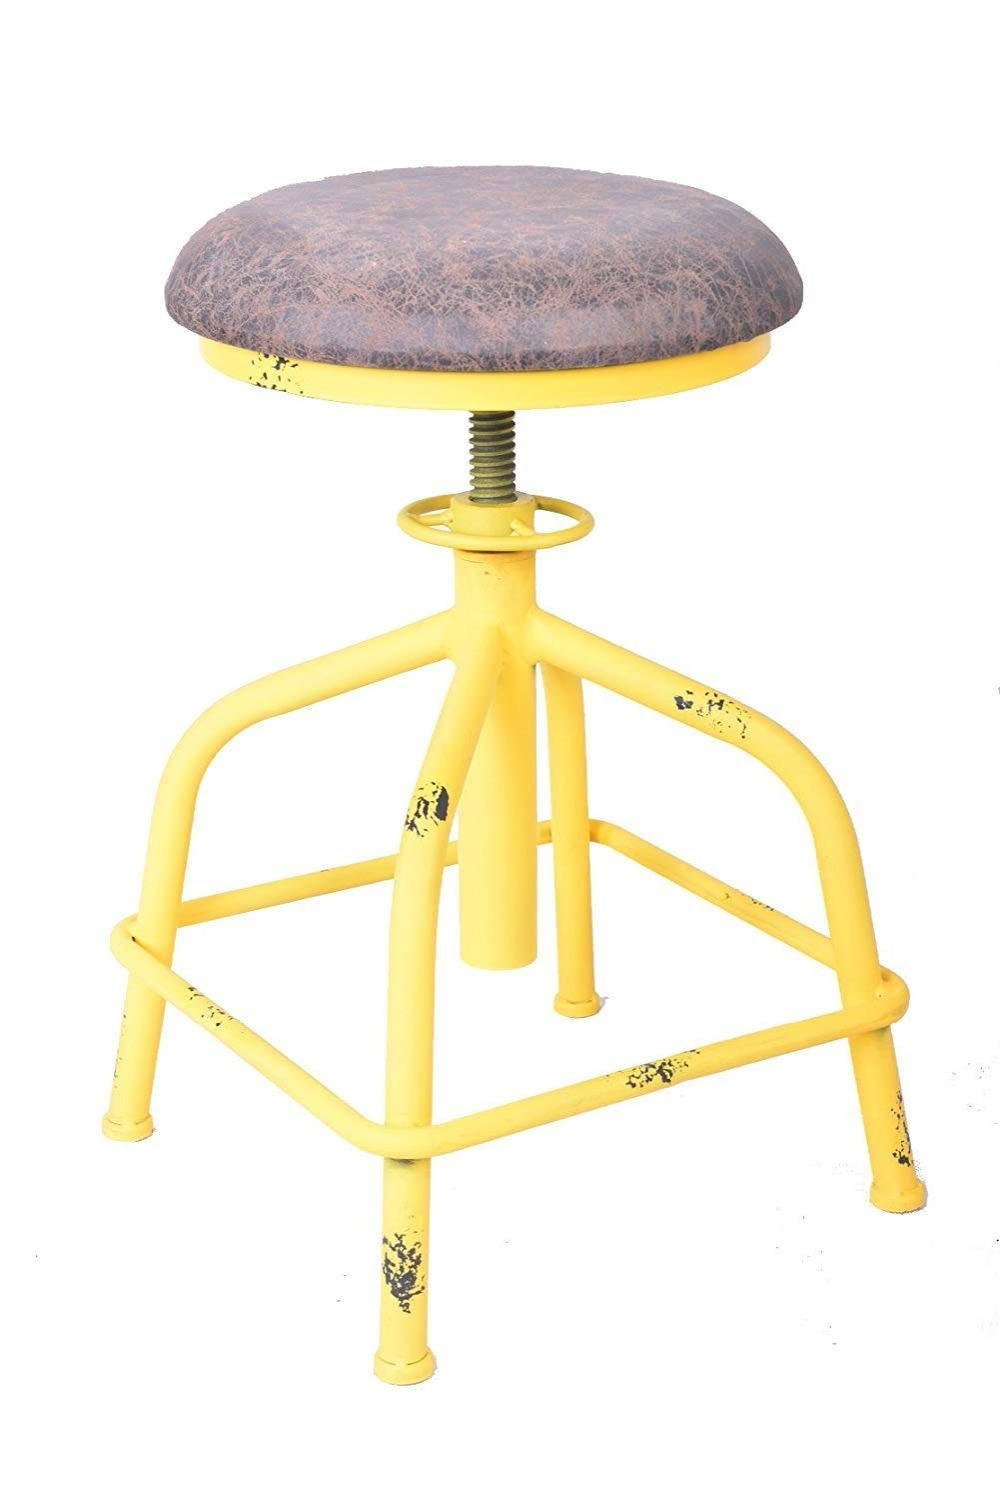 American Antique Industrial Design PU Leather Bar Stool Round Seat Adjustable Height Swivel Chair industrial bar chairs furniture design metal adjustable height back rest swivel chair tractor saddle bar stool chair seat